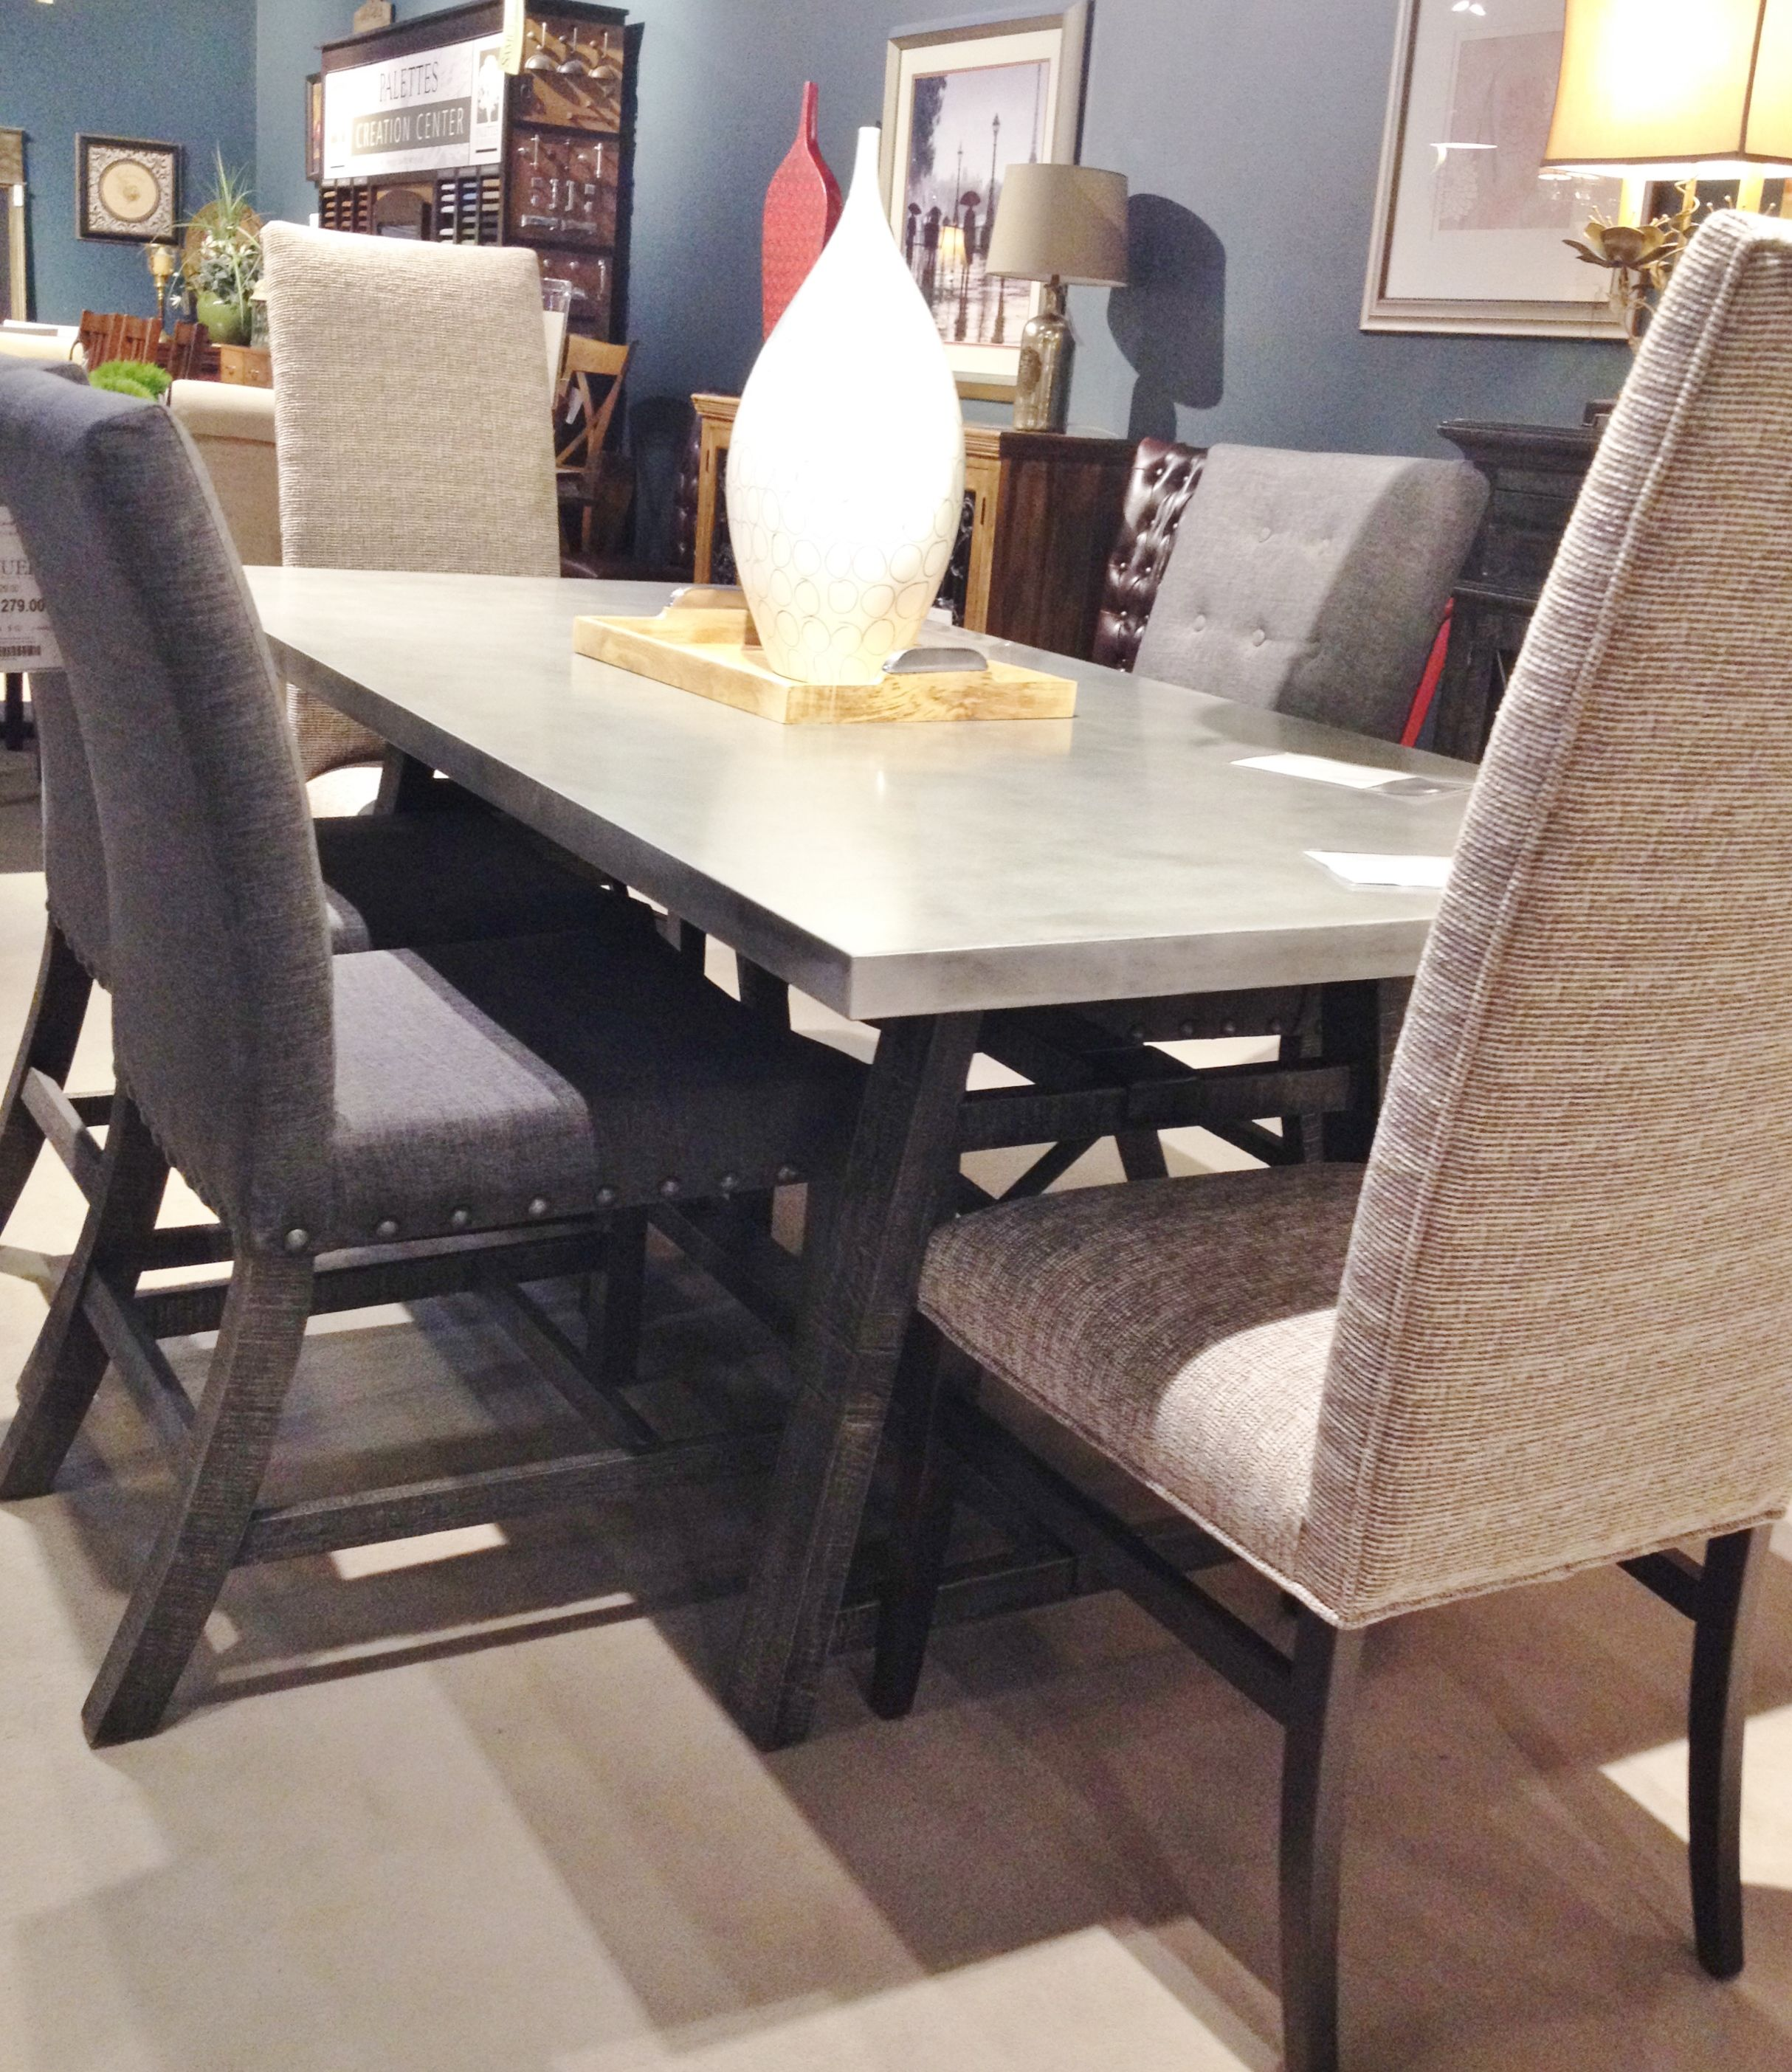 Zinc Top Table With Rustic Base And Matching Server Other Sizes Available And Many Choices Of Chairs To Match Table Home Decor Room